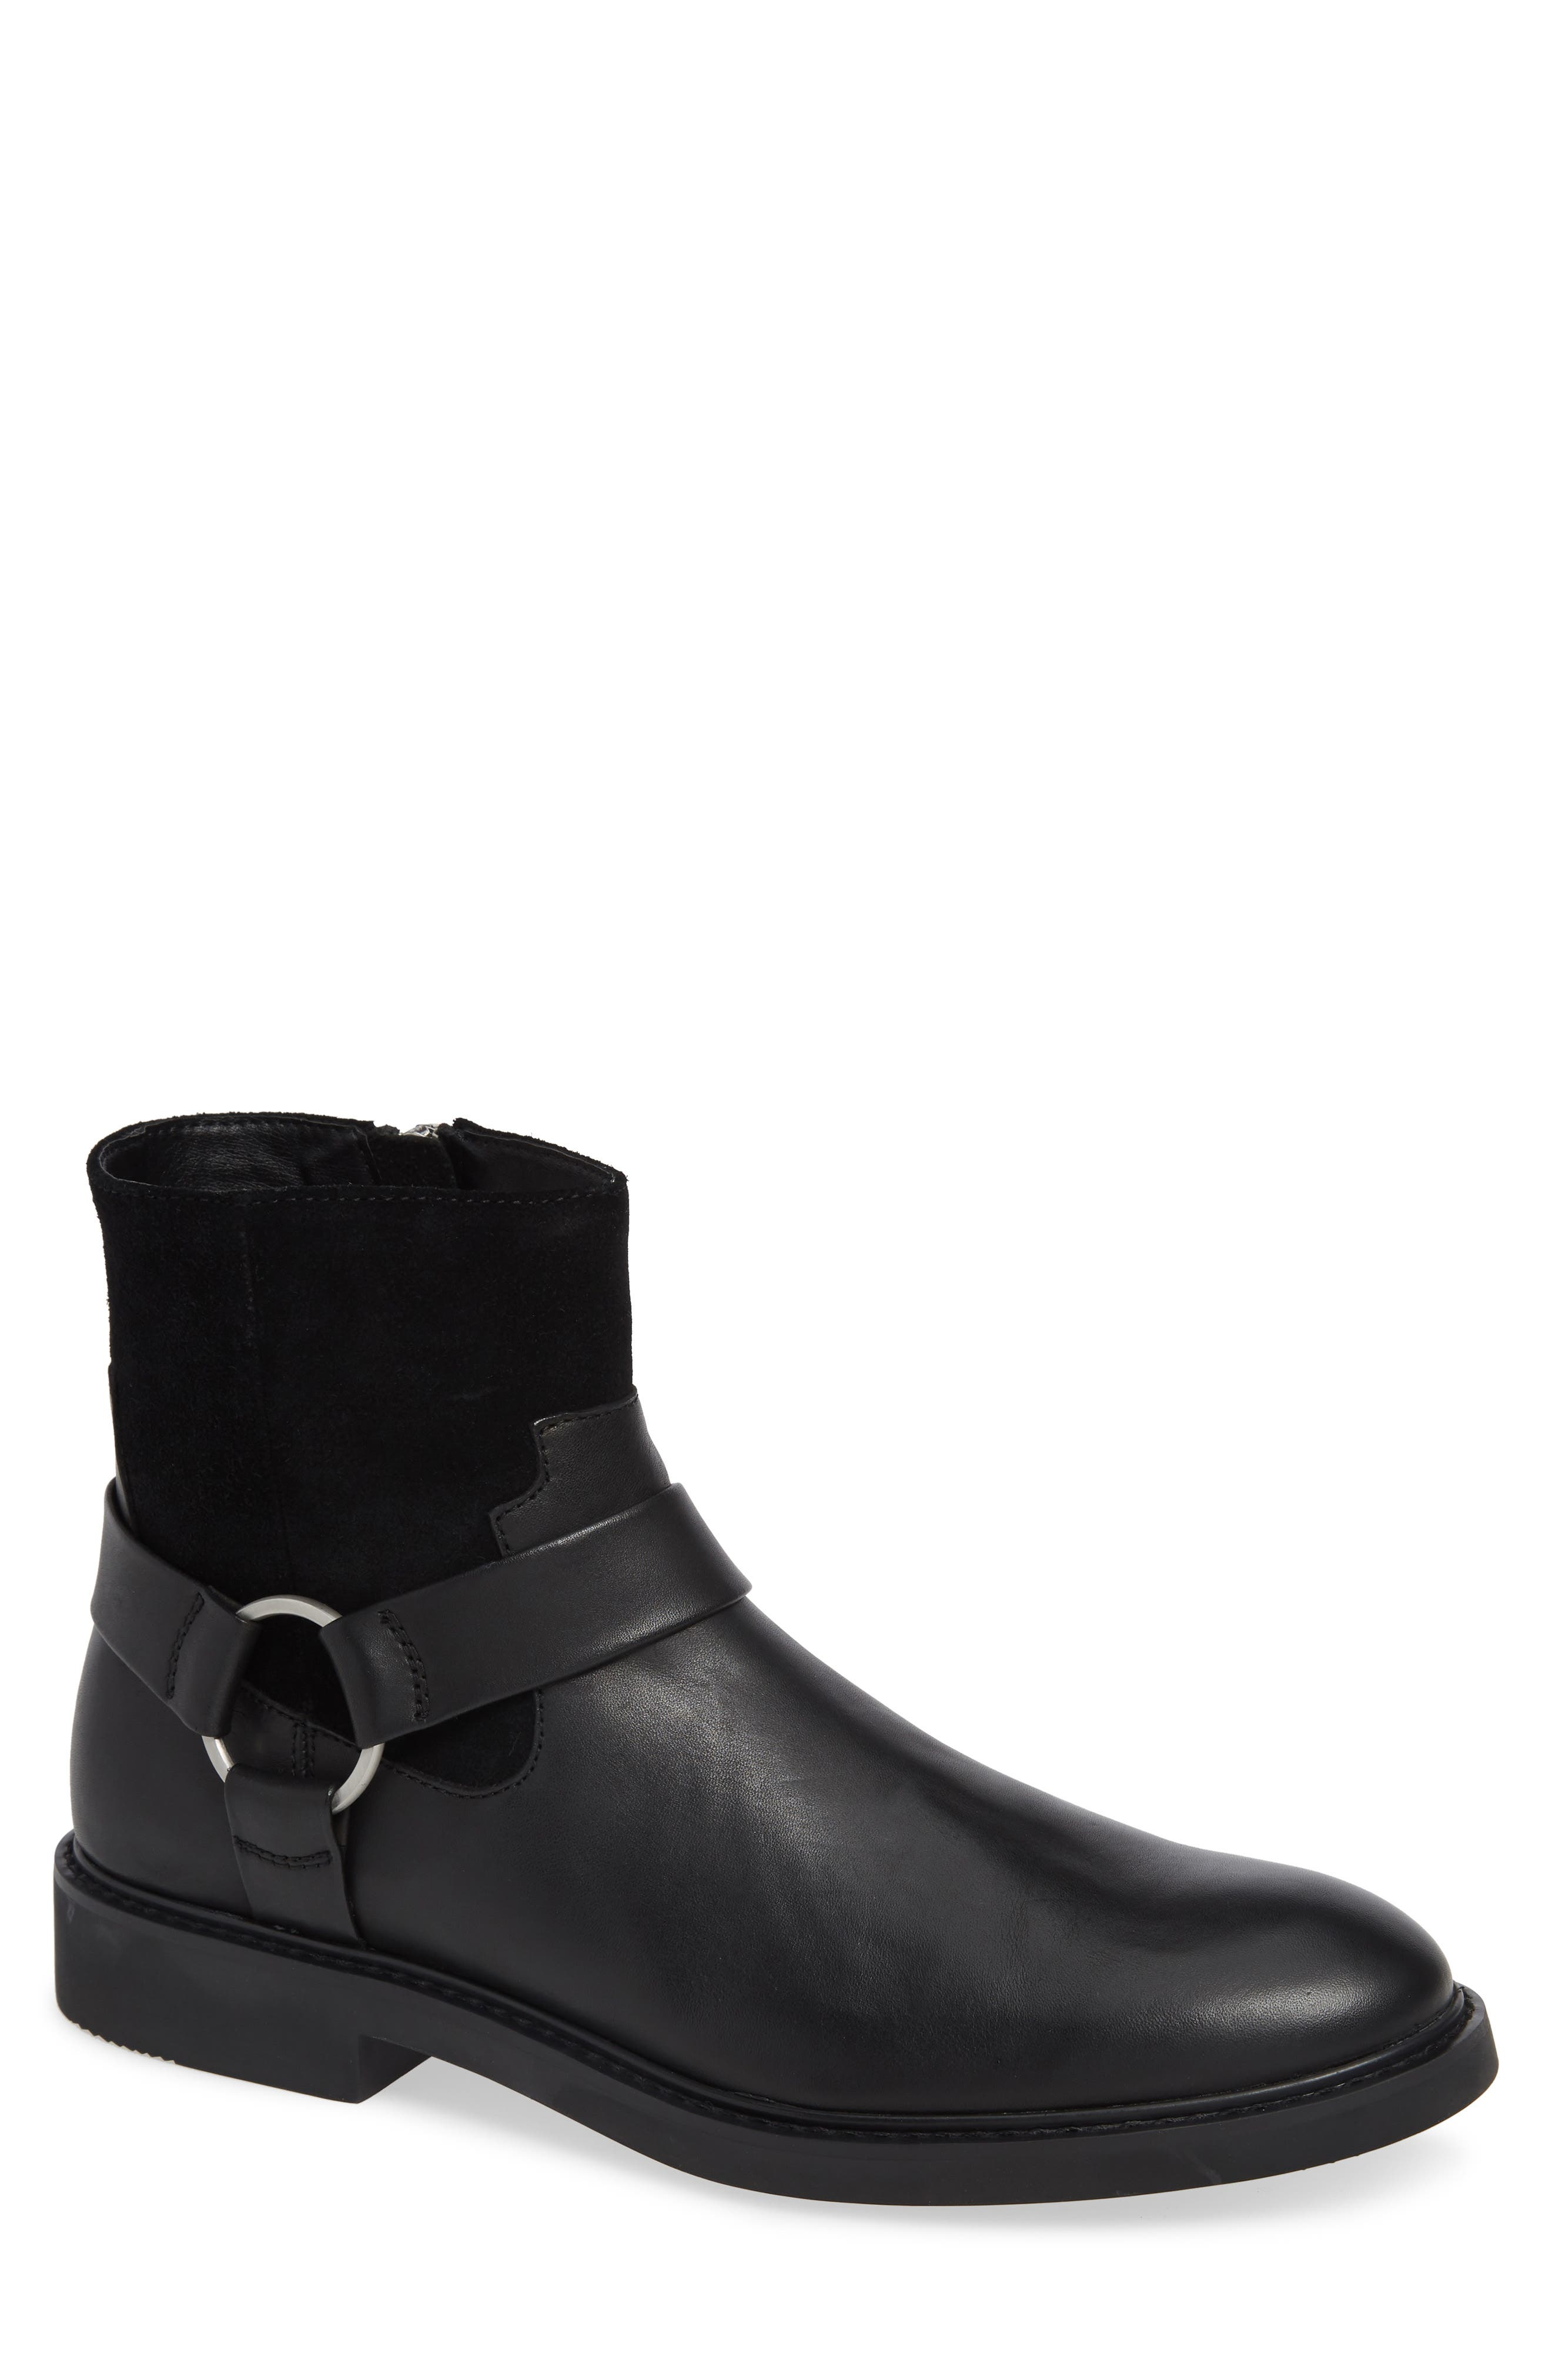 Vergil Zip Boot,                             Main thumbnail 1, color,                             001